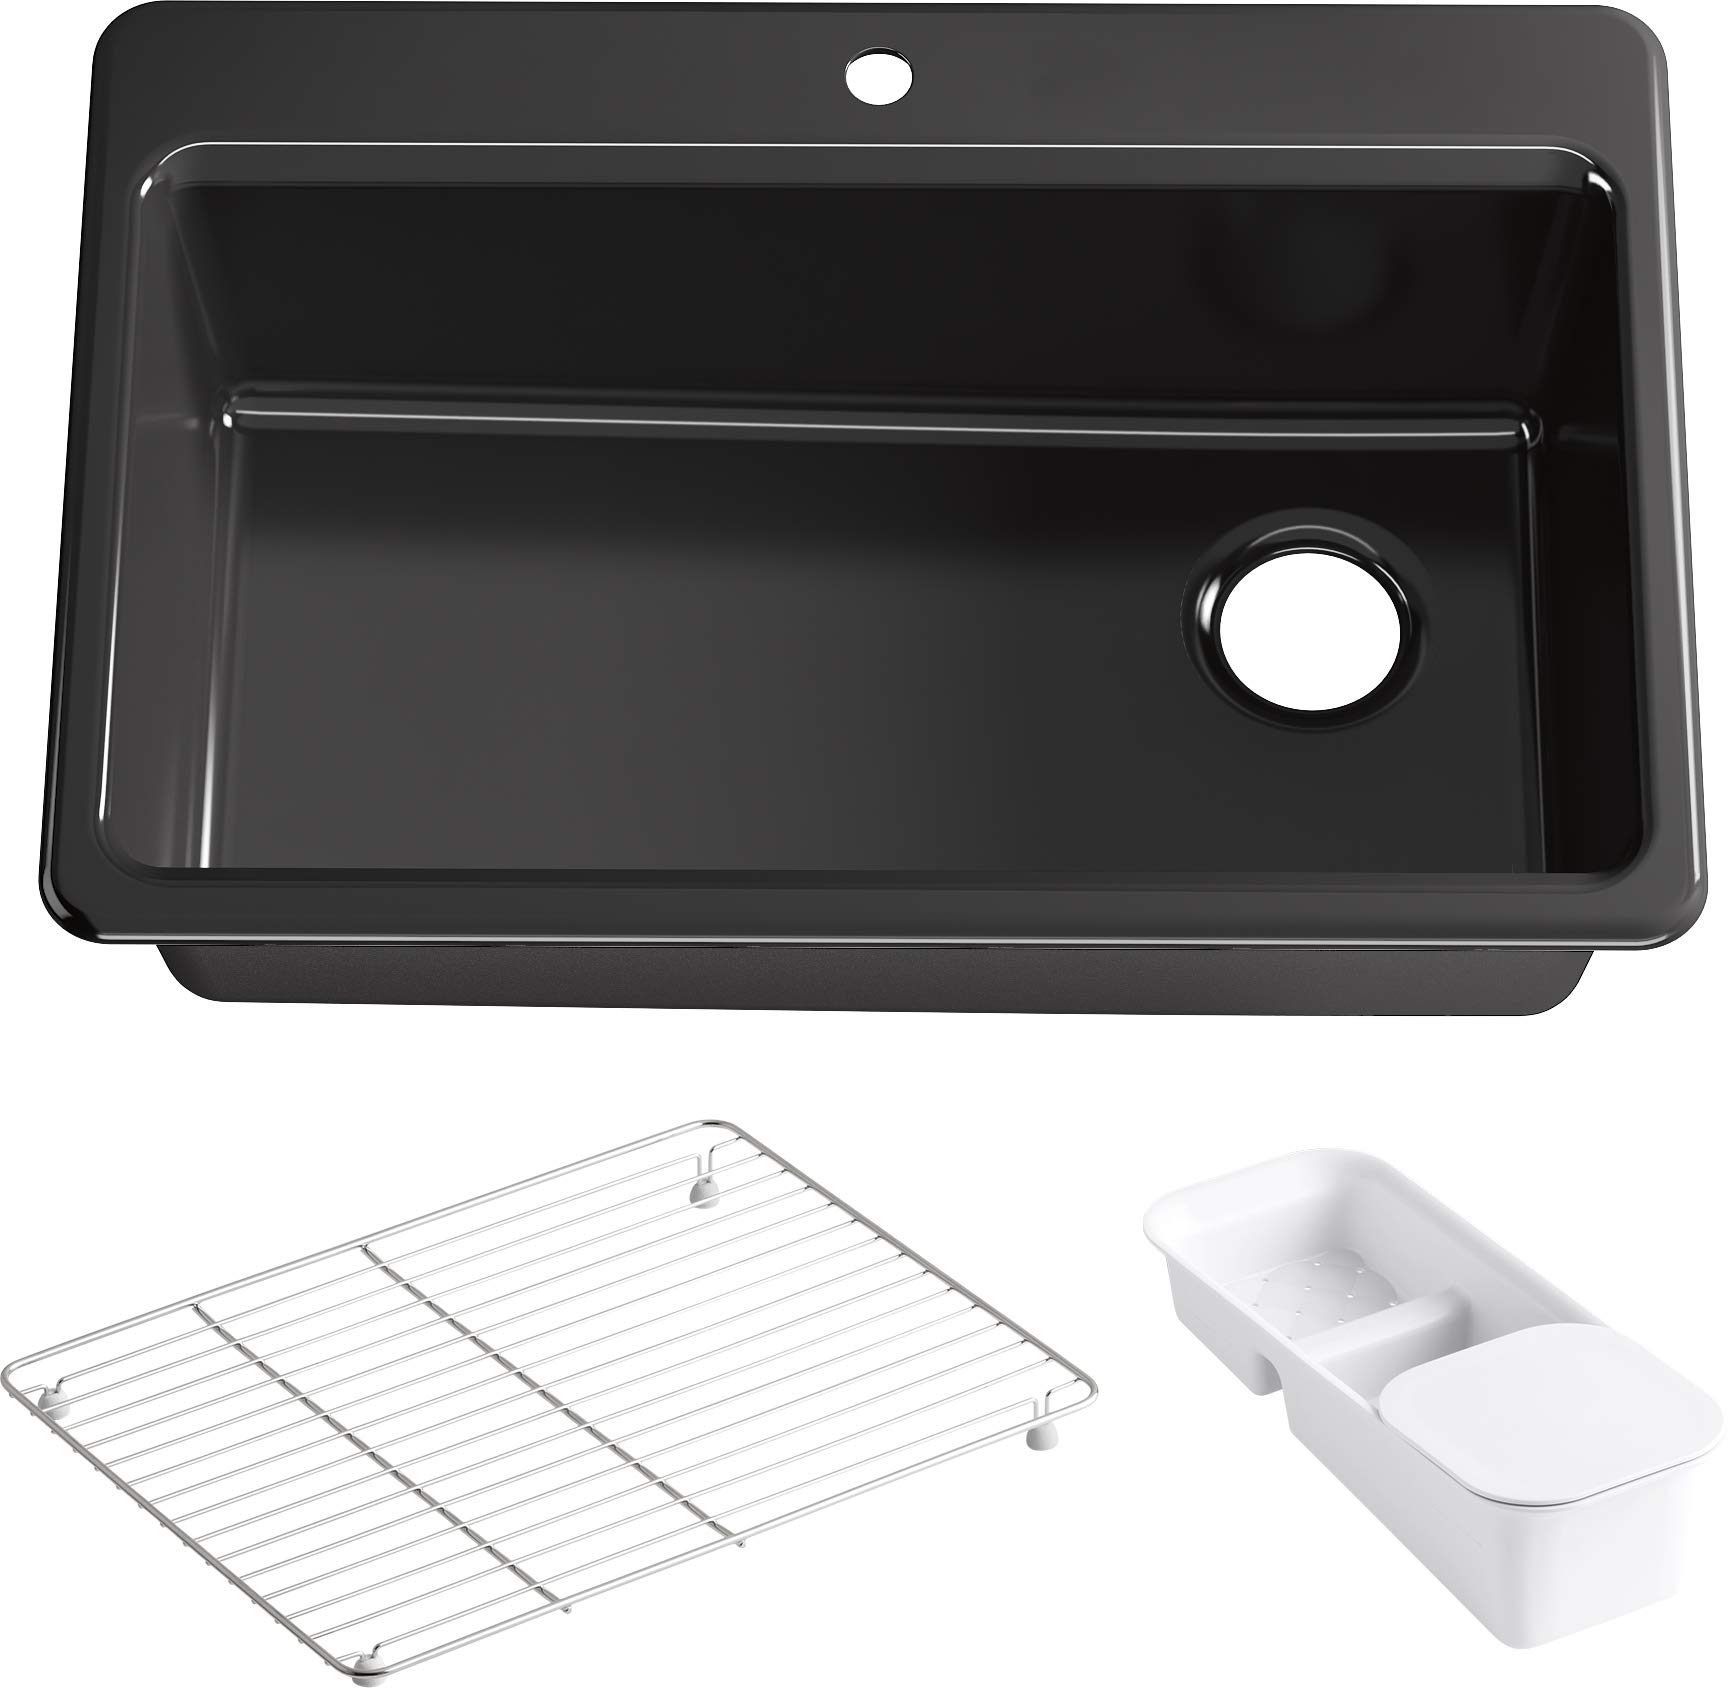 Riverby 33 In. x 22 In. Top-Mount Single-Bowl Kitchen Sink with Single Faucet Hole and Accessories, Black Black